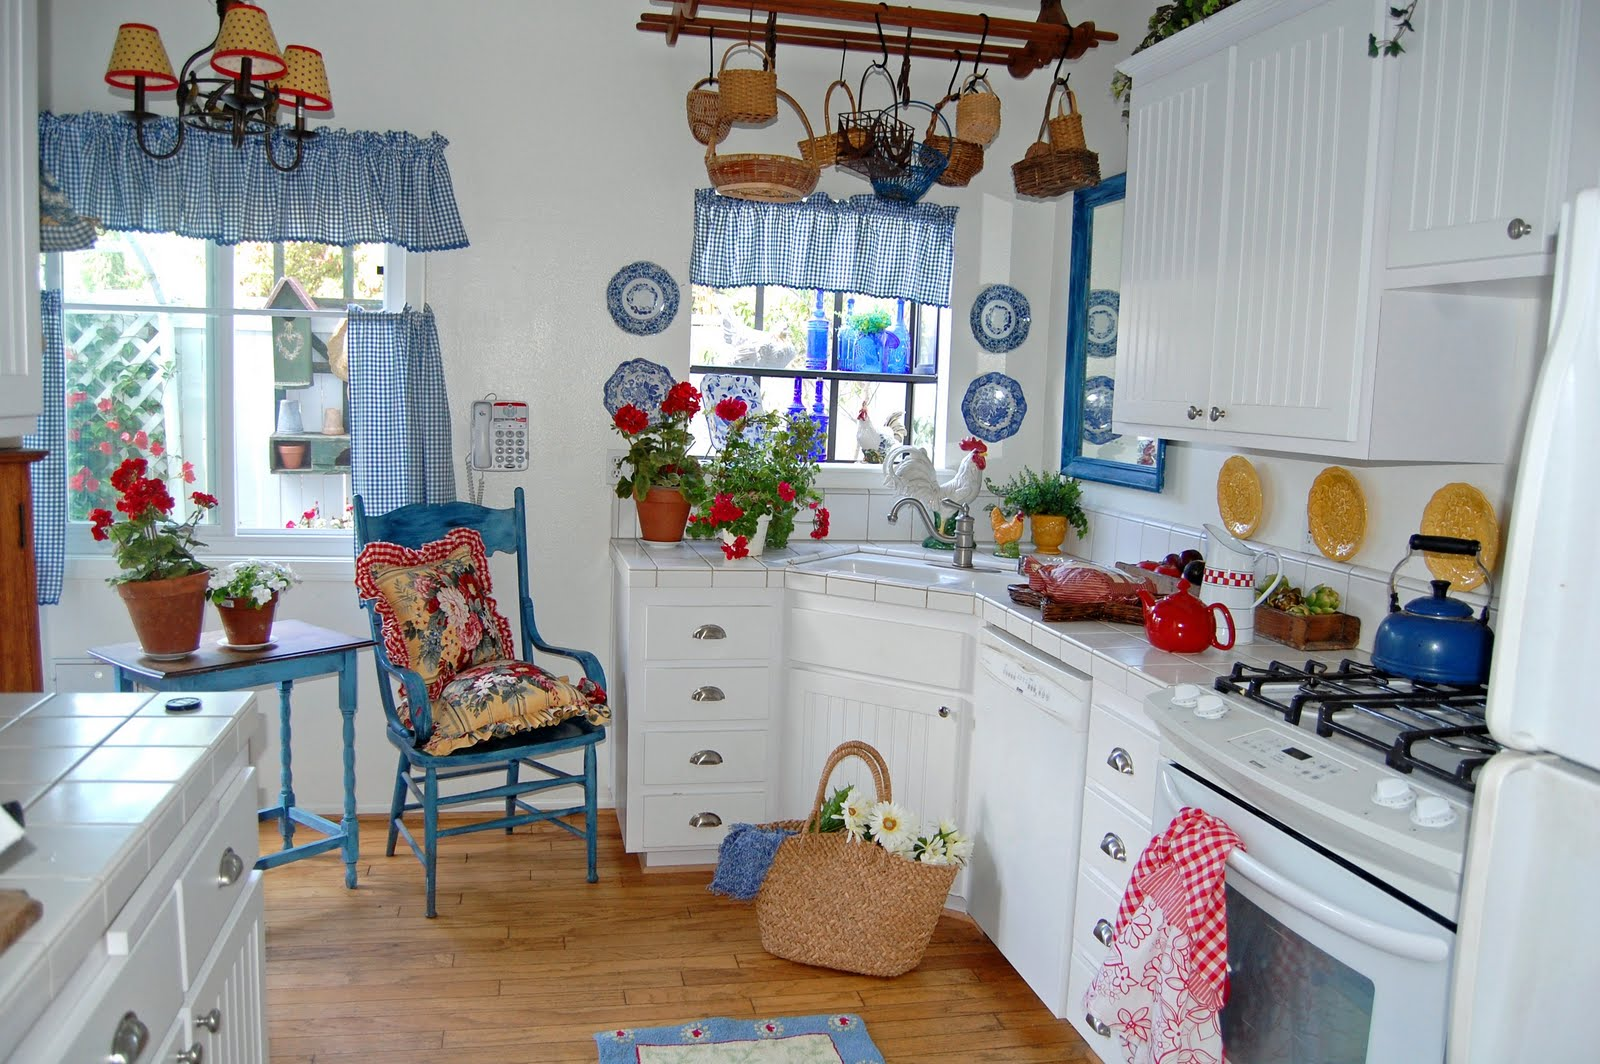 The Cheeky Seagull: Love These Kitchens